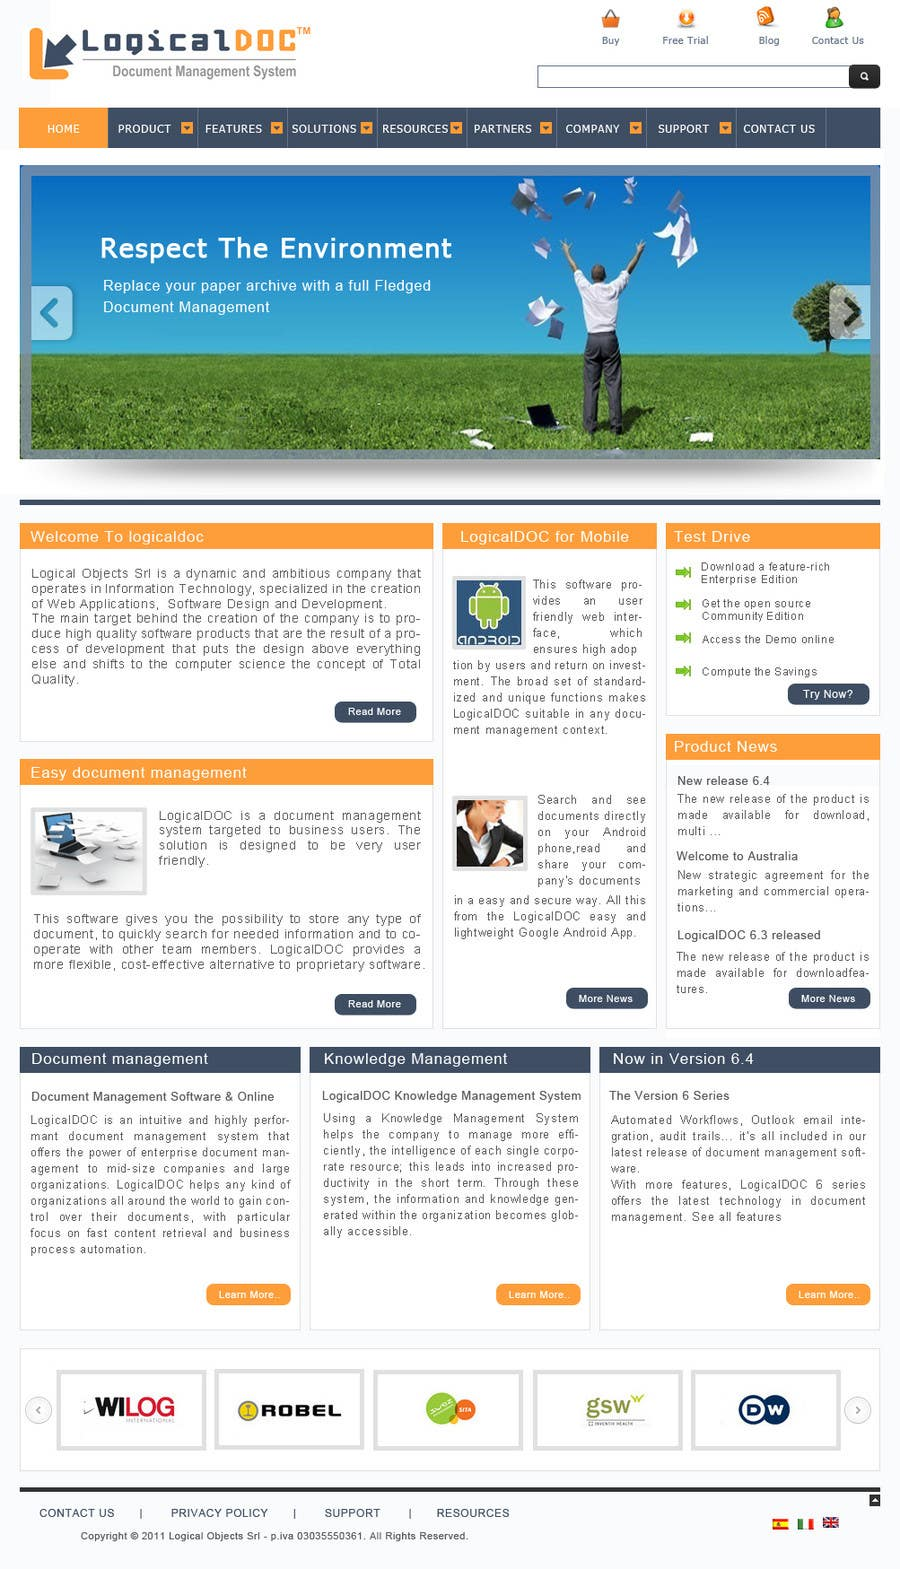 Penyertaan Peraduan #                                        6                                      untuk                                         Layout the contents of the Home page of a web-site using a defined template